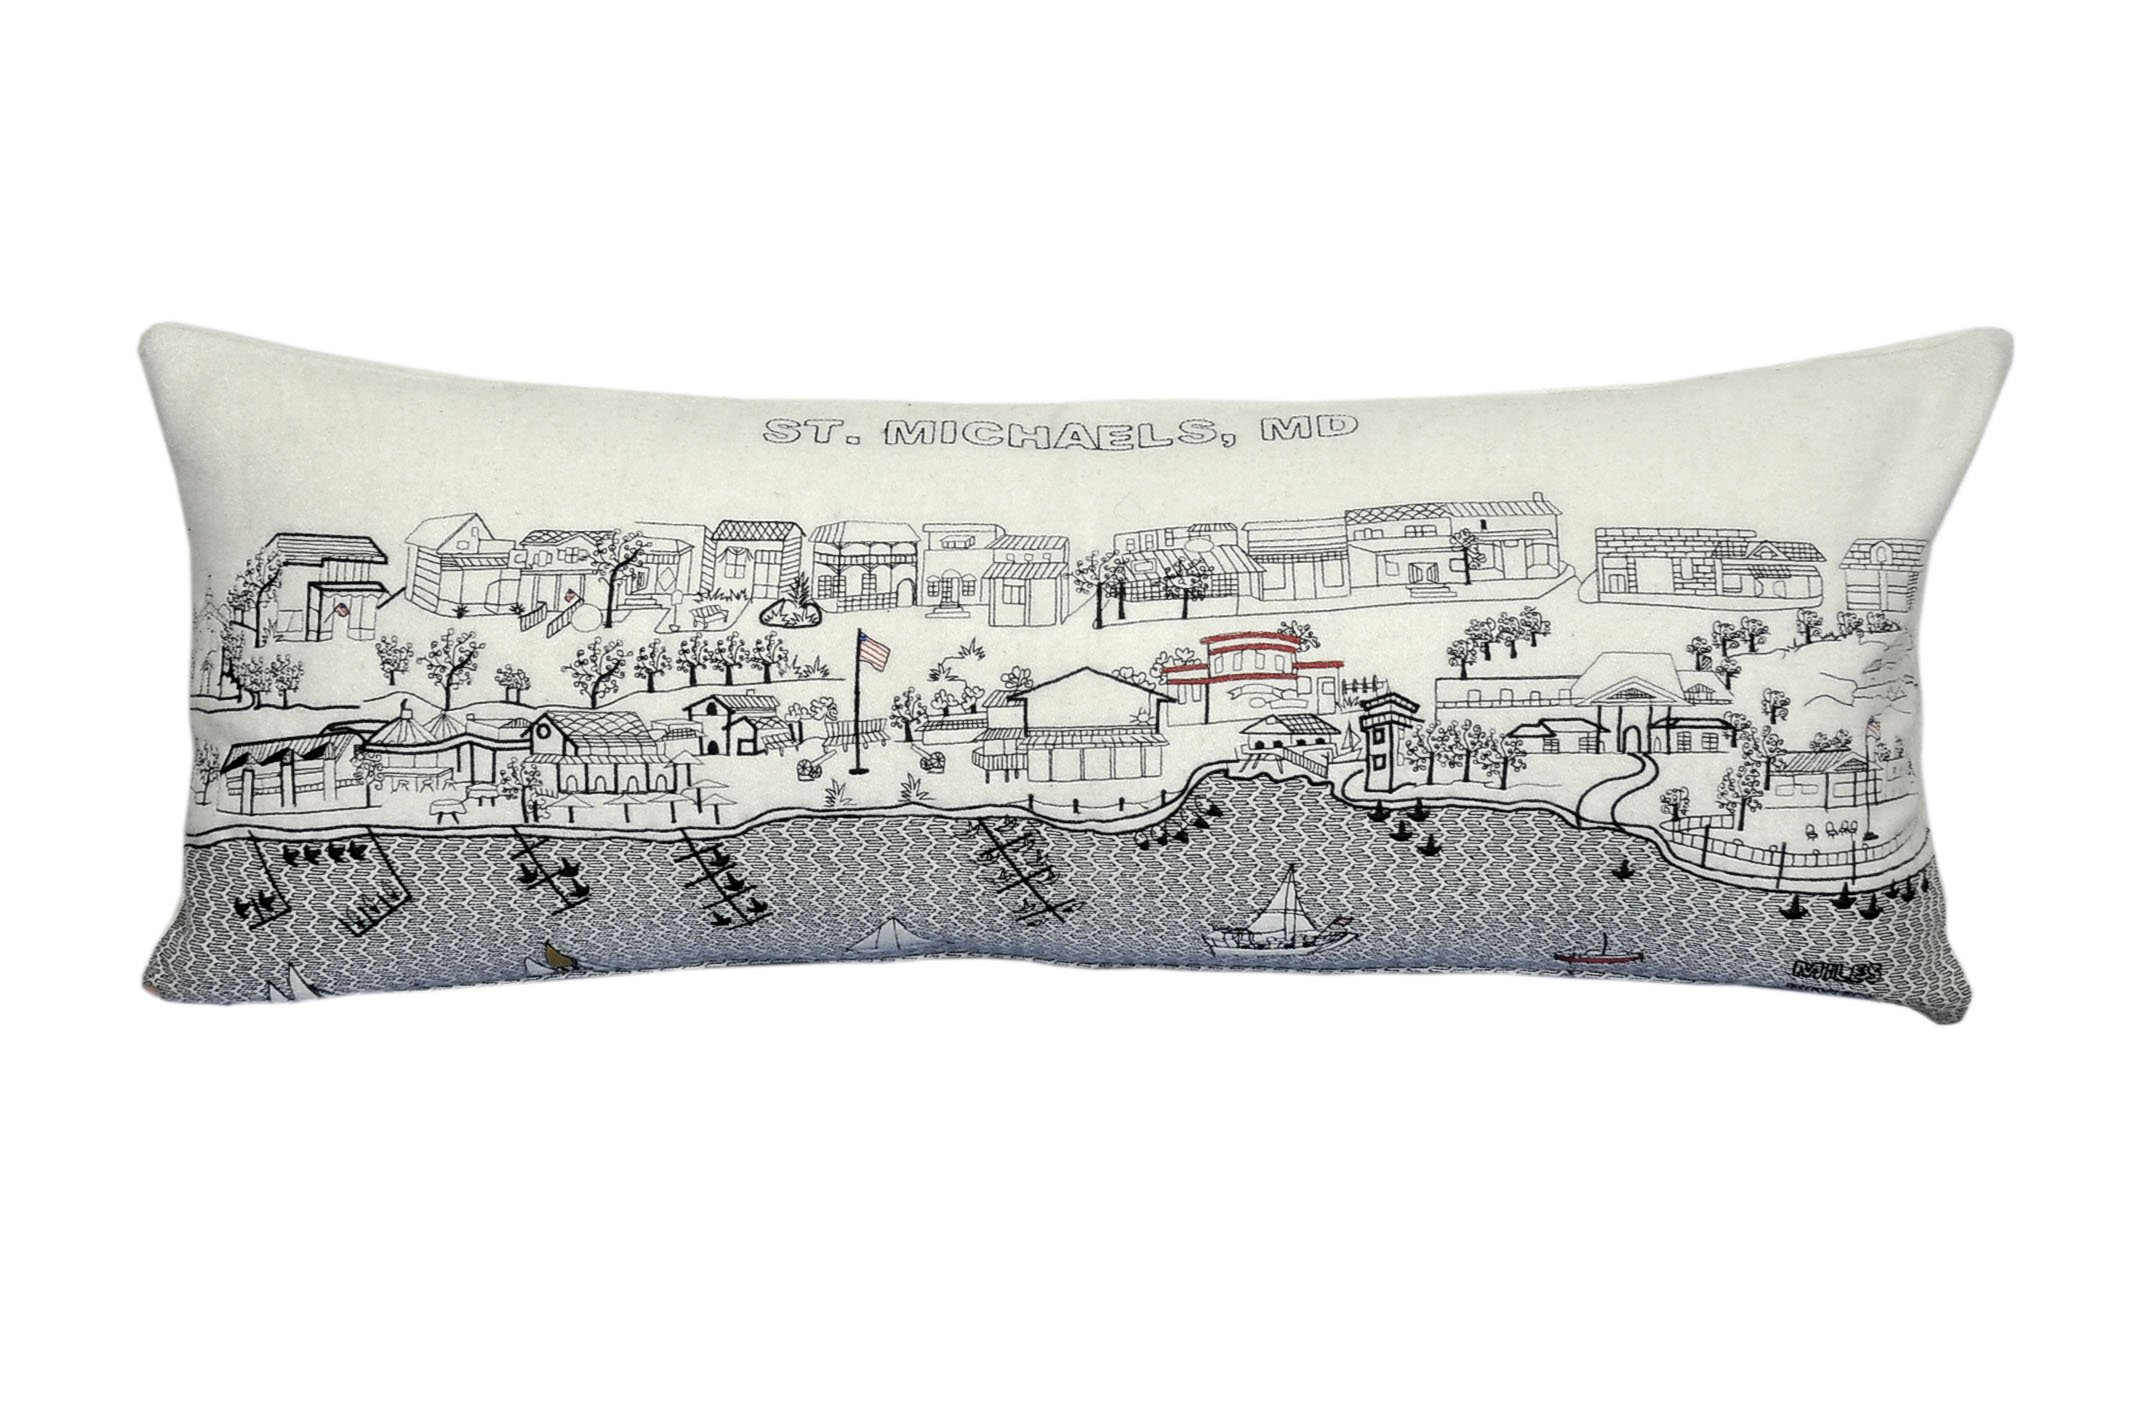 Beyond Cushions Polyester Throw Pillows Beyond Cushions St. Michaels Md Daytime Skyline Queen Size Embroidered Pillow 35 X 14 X 5 Inches Off-White Model # STM-DAY-QUN